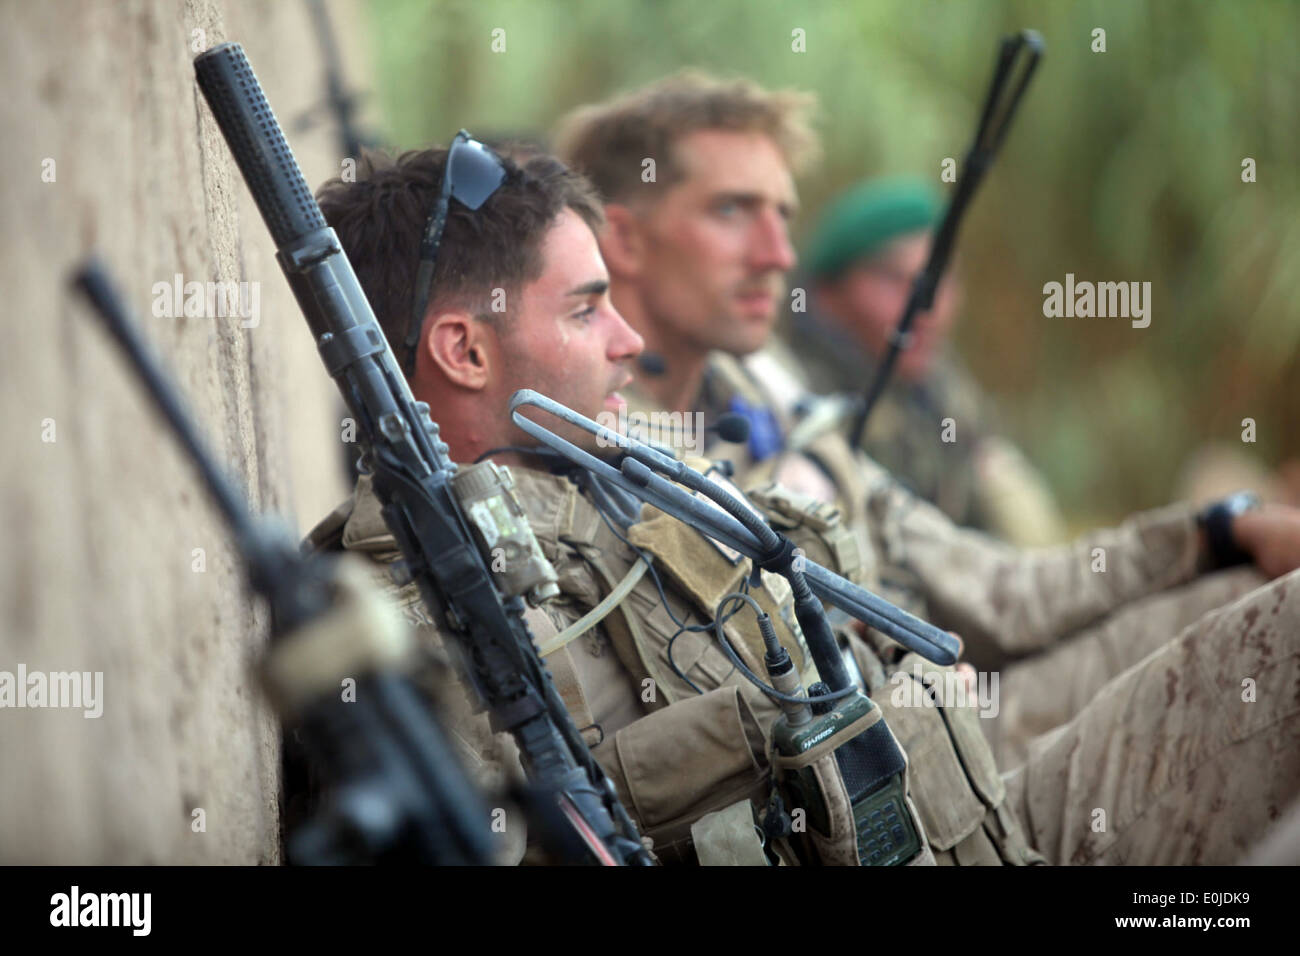 U.S. Marines with Bravo Company, 1st Reconnaissance Battalion, 1st Marine Division (Forward), take a security pause Stock Photo